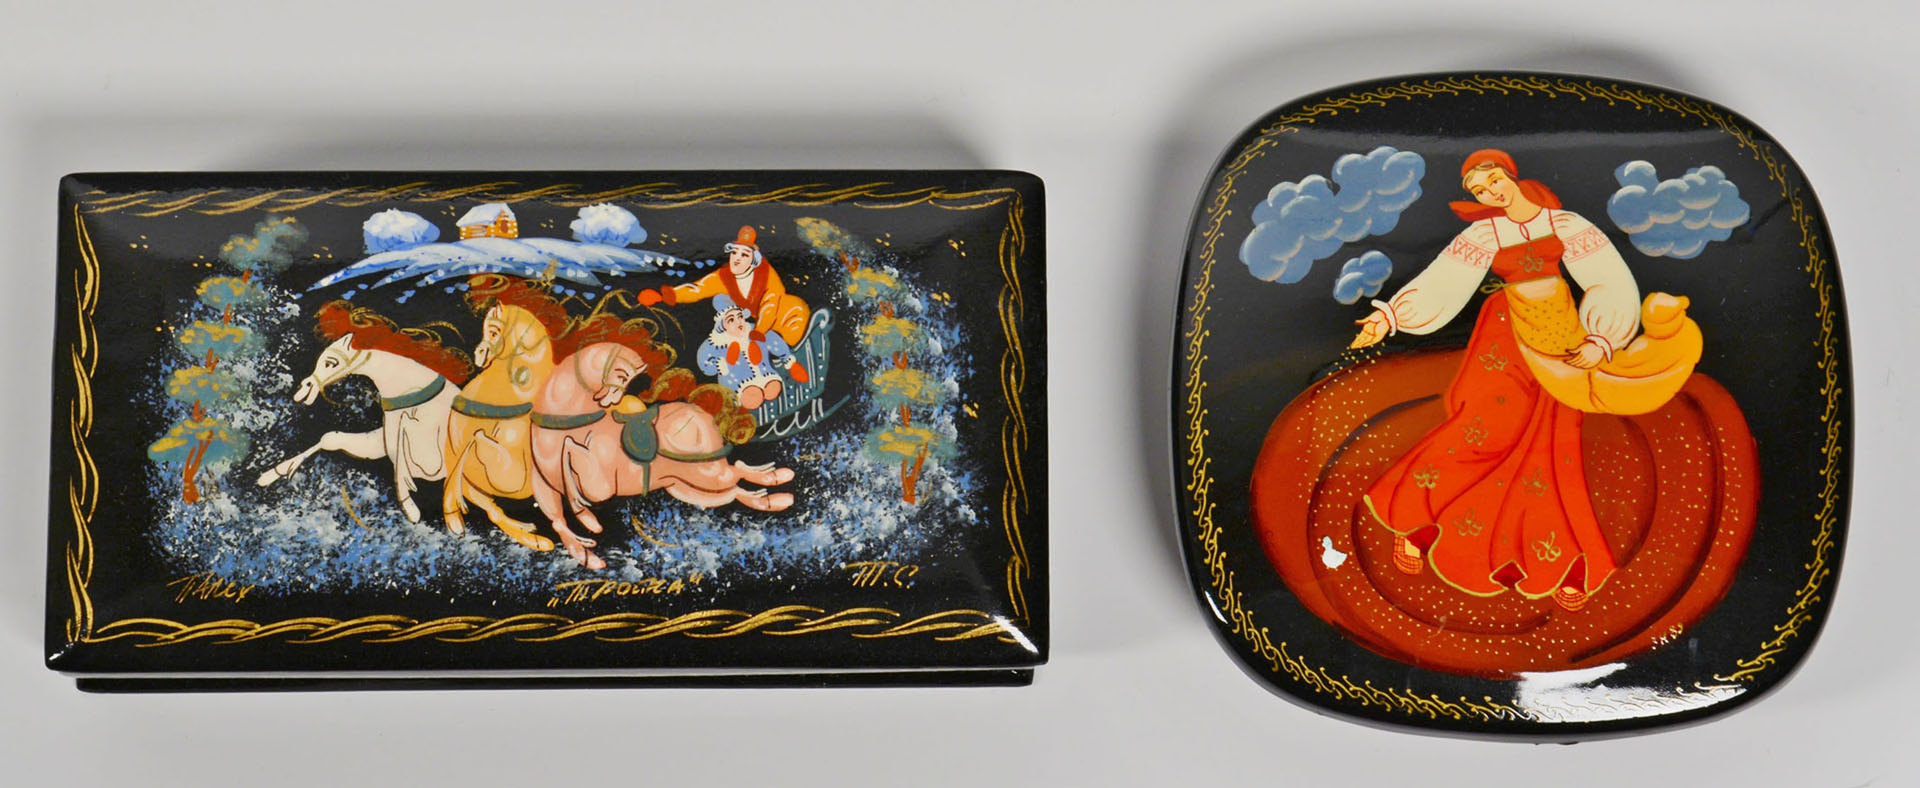 Lot 679: Collection of 5 Russian Lacquer Boxes & Book